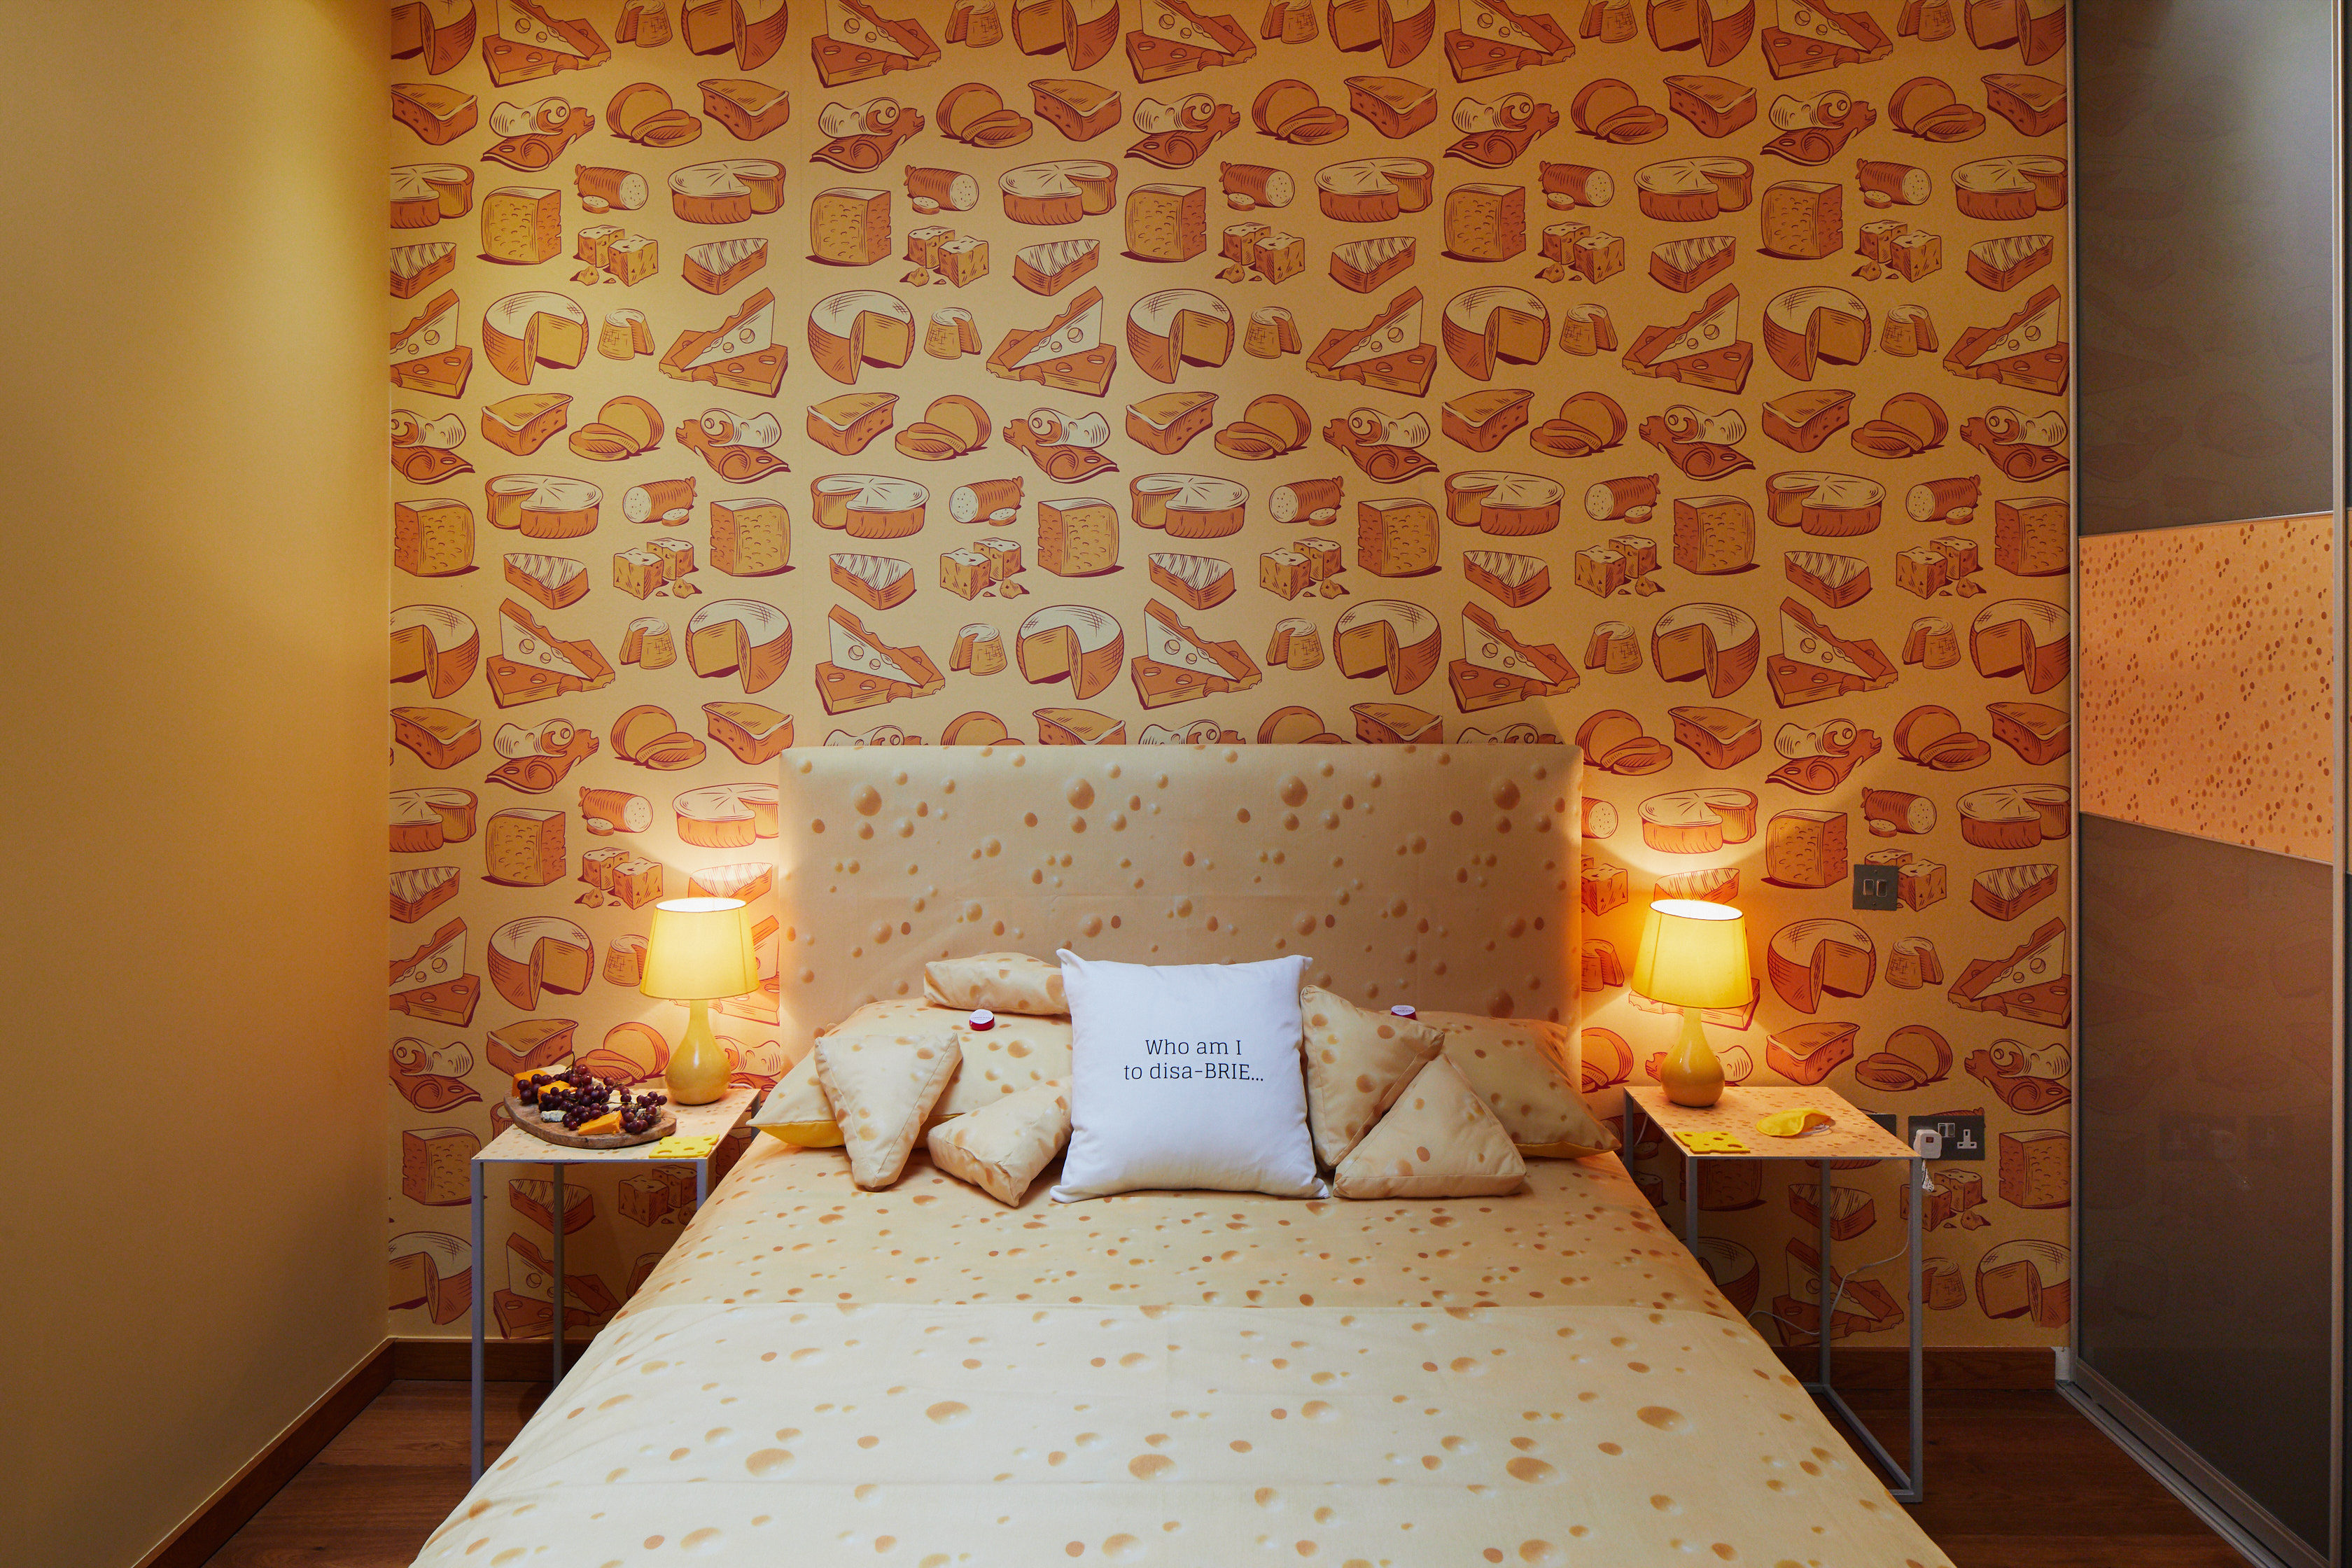 World's first cheese-themed hotel suite opens